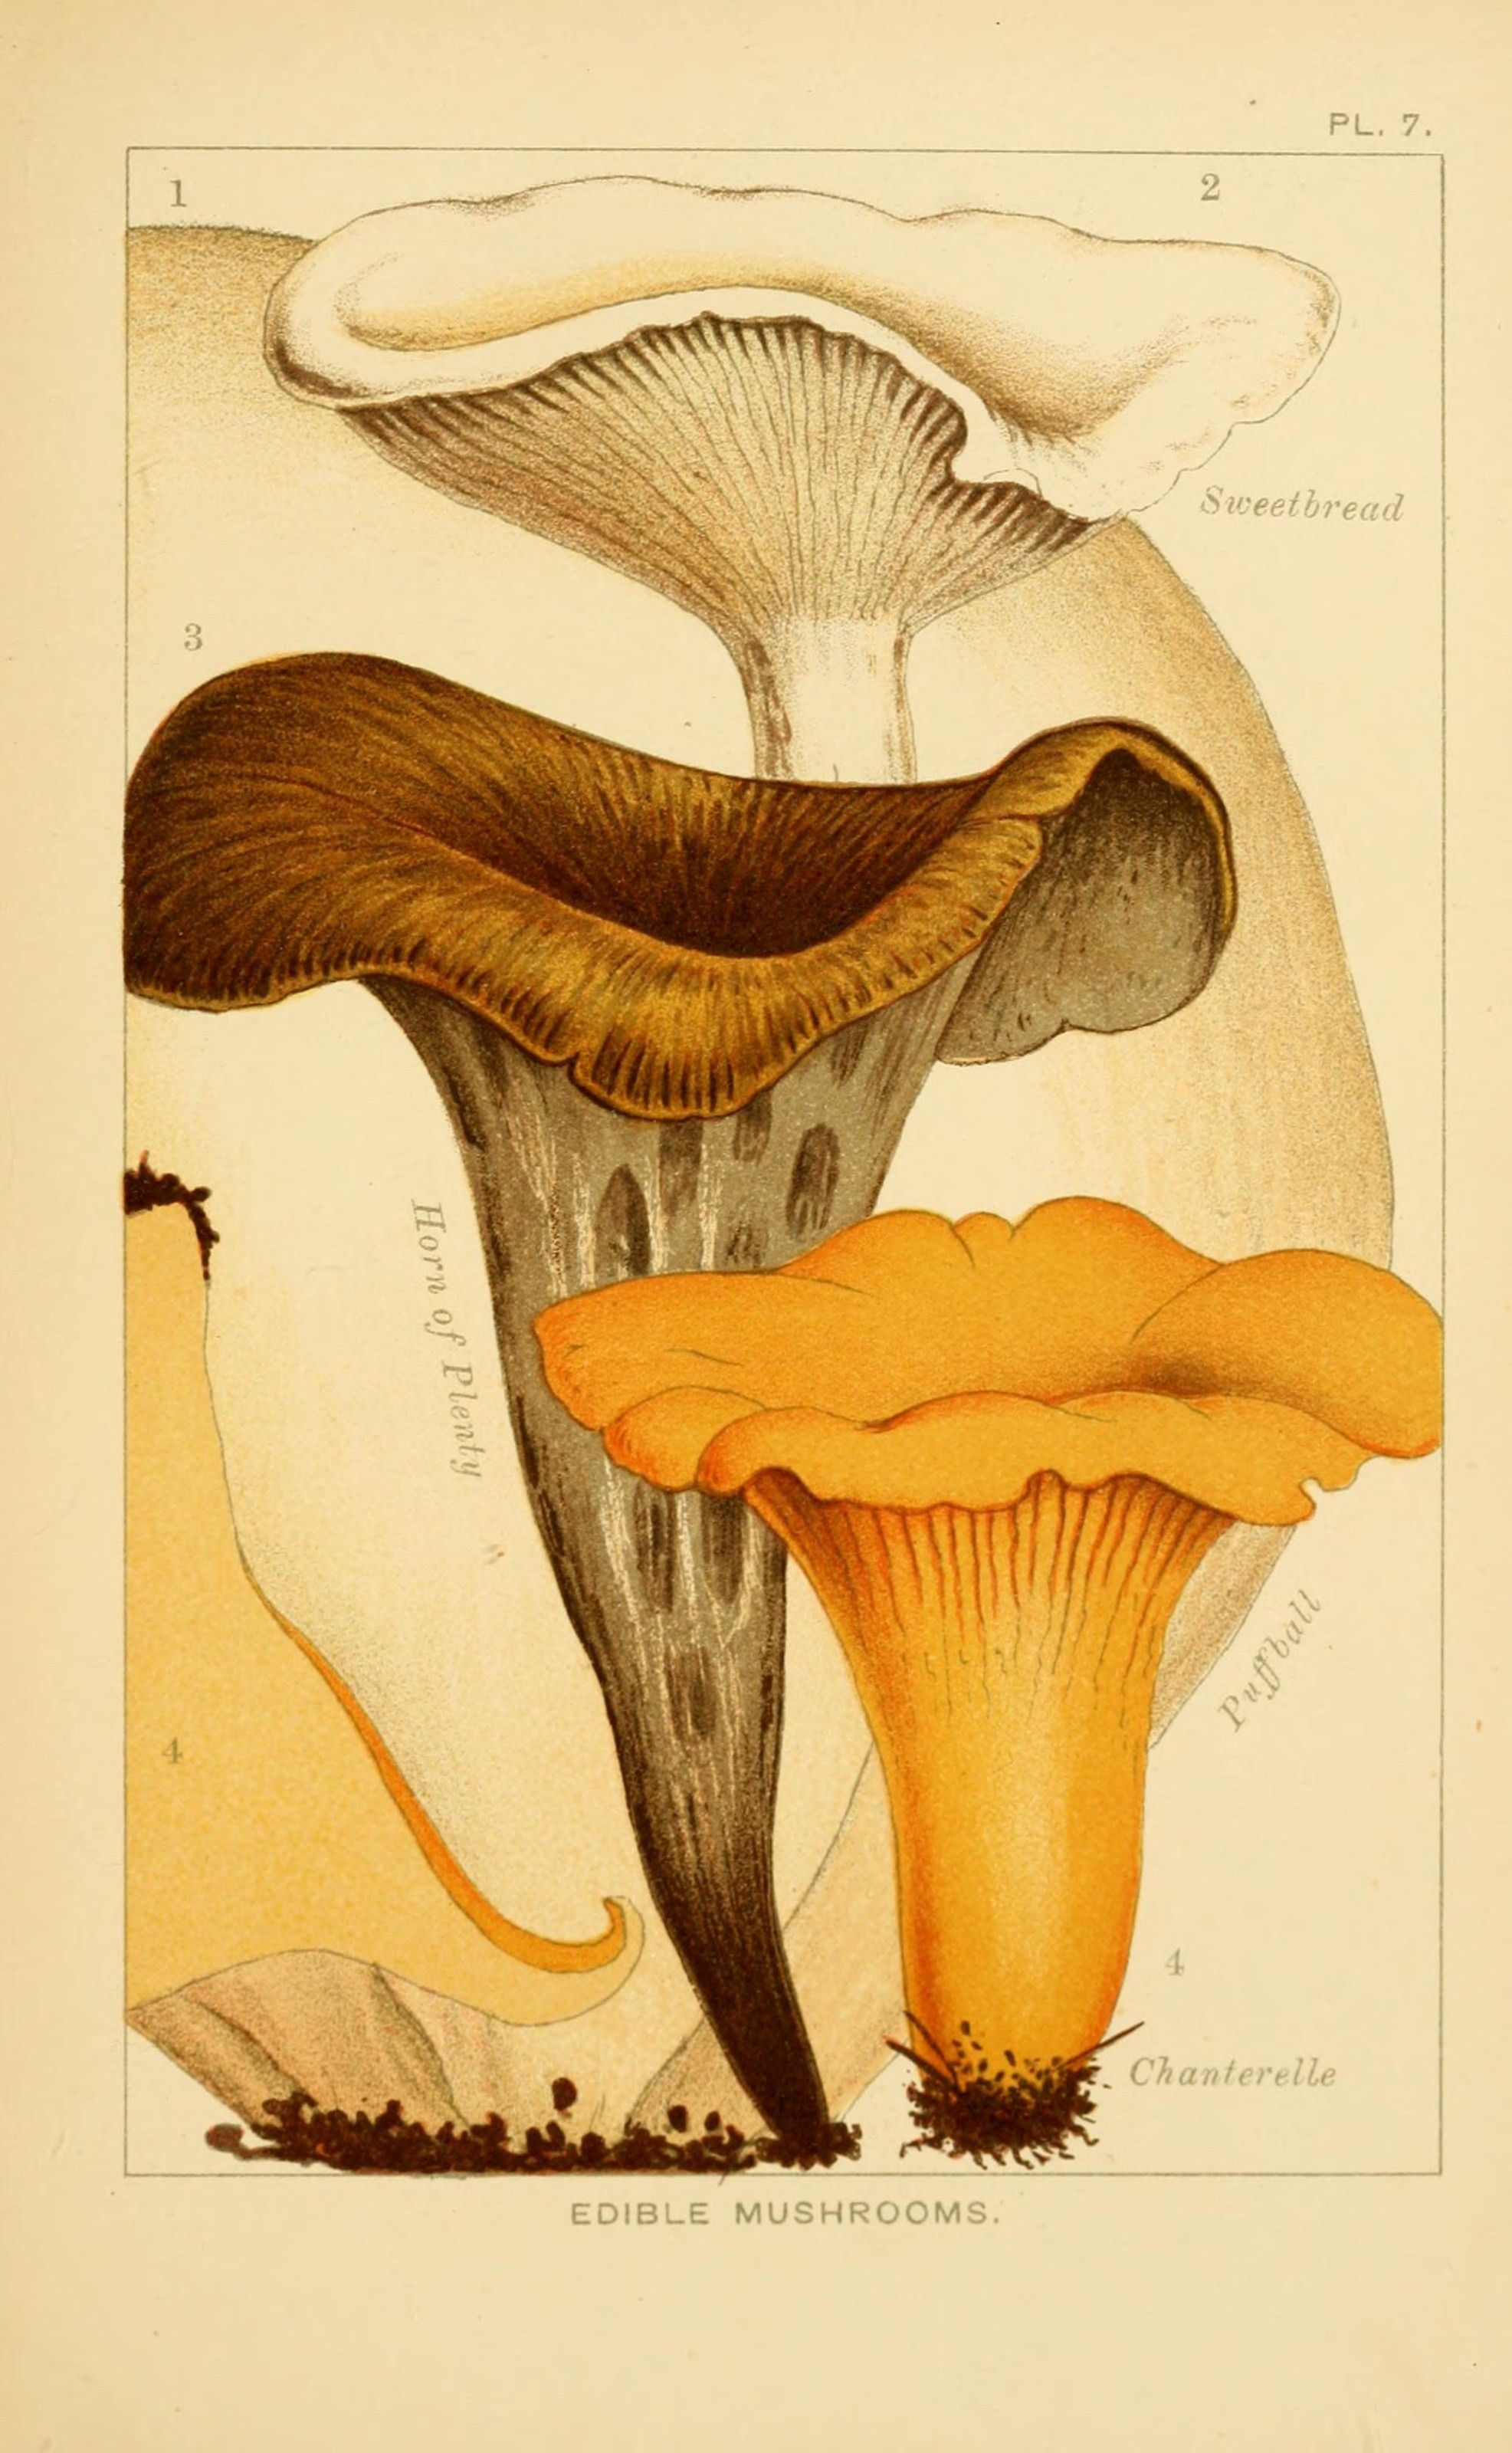 Scientific illustration of a puffball, sweetbread, horn of plenty and chanterelle mushroom, from Edible and poisonous mushrooms:. London,Society for Promoting Christian Knowledge,1894.